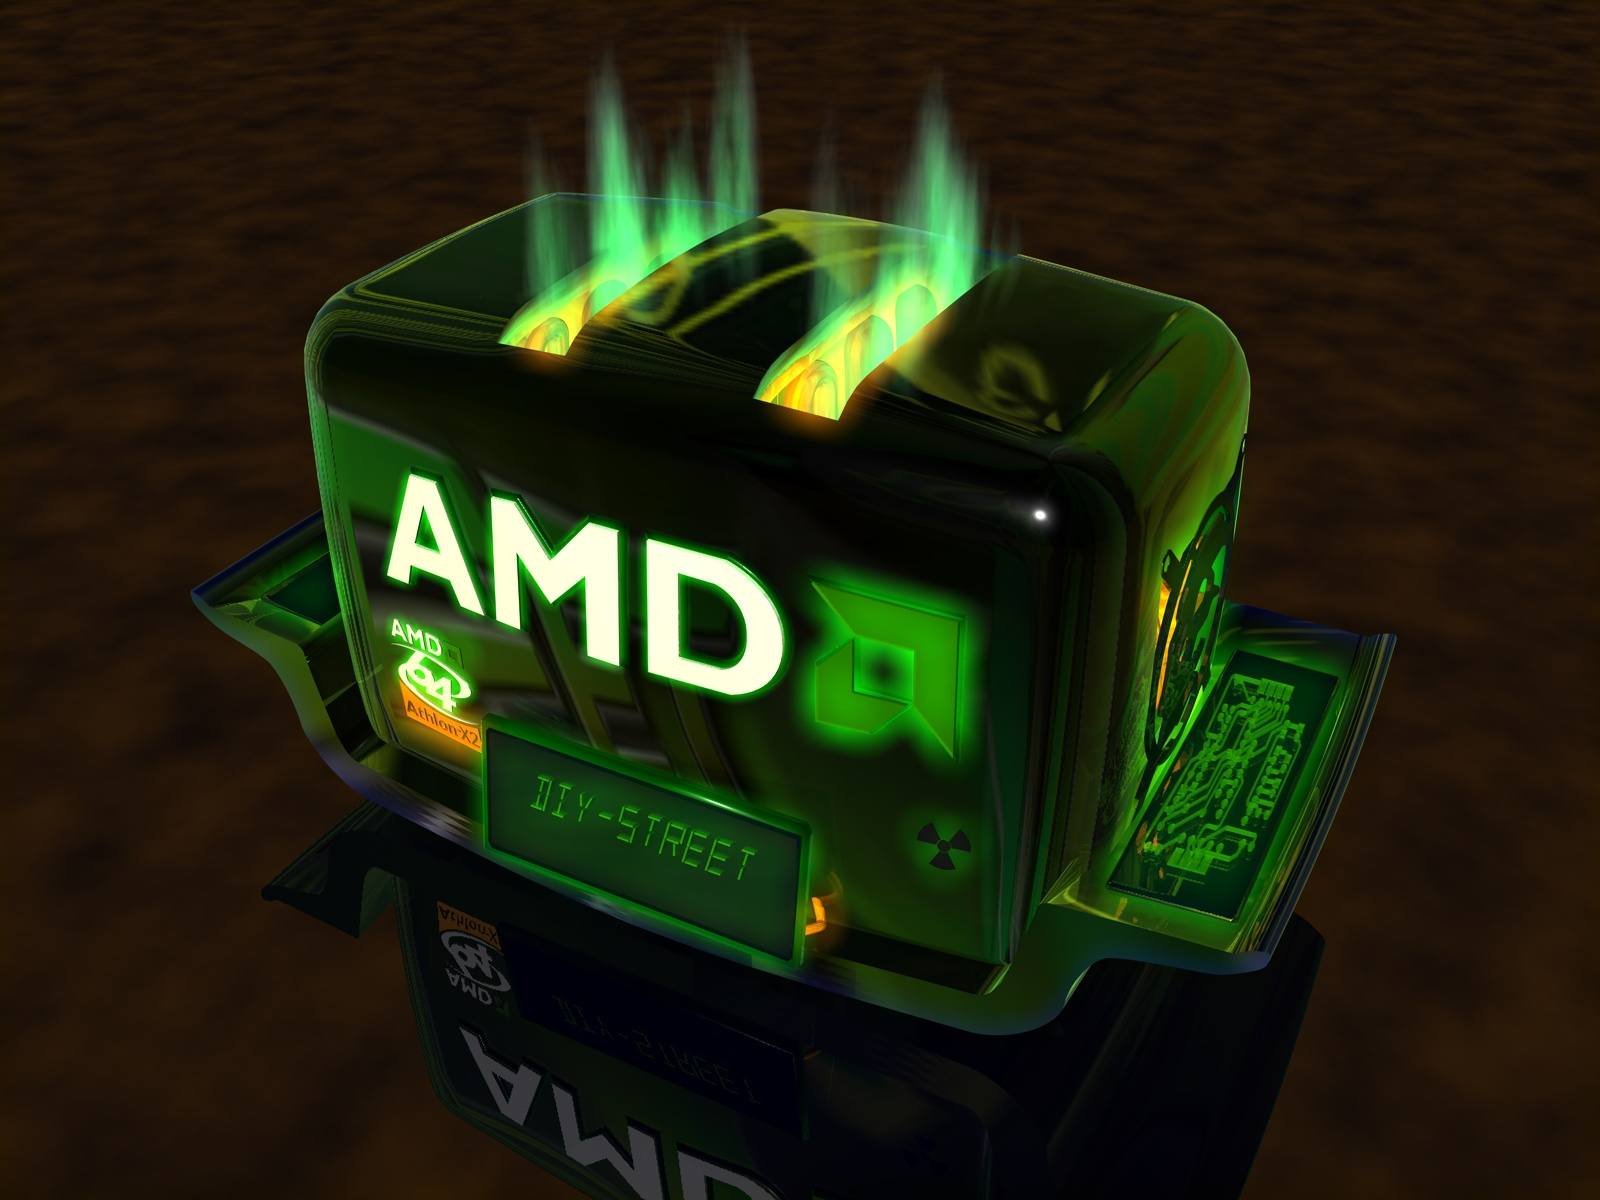 download wallpapers amd fx - photo #22